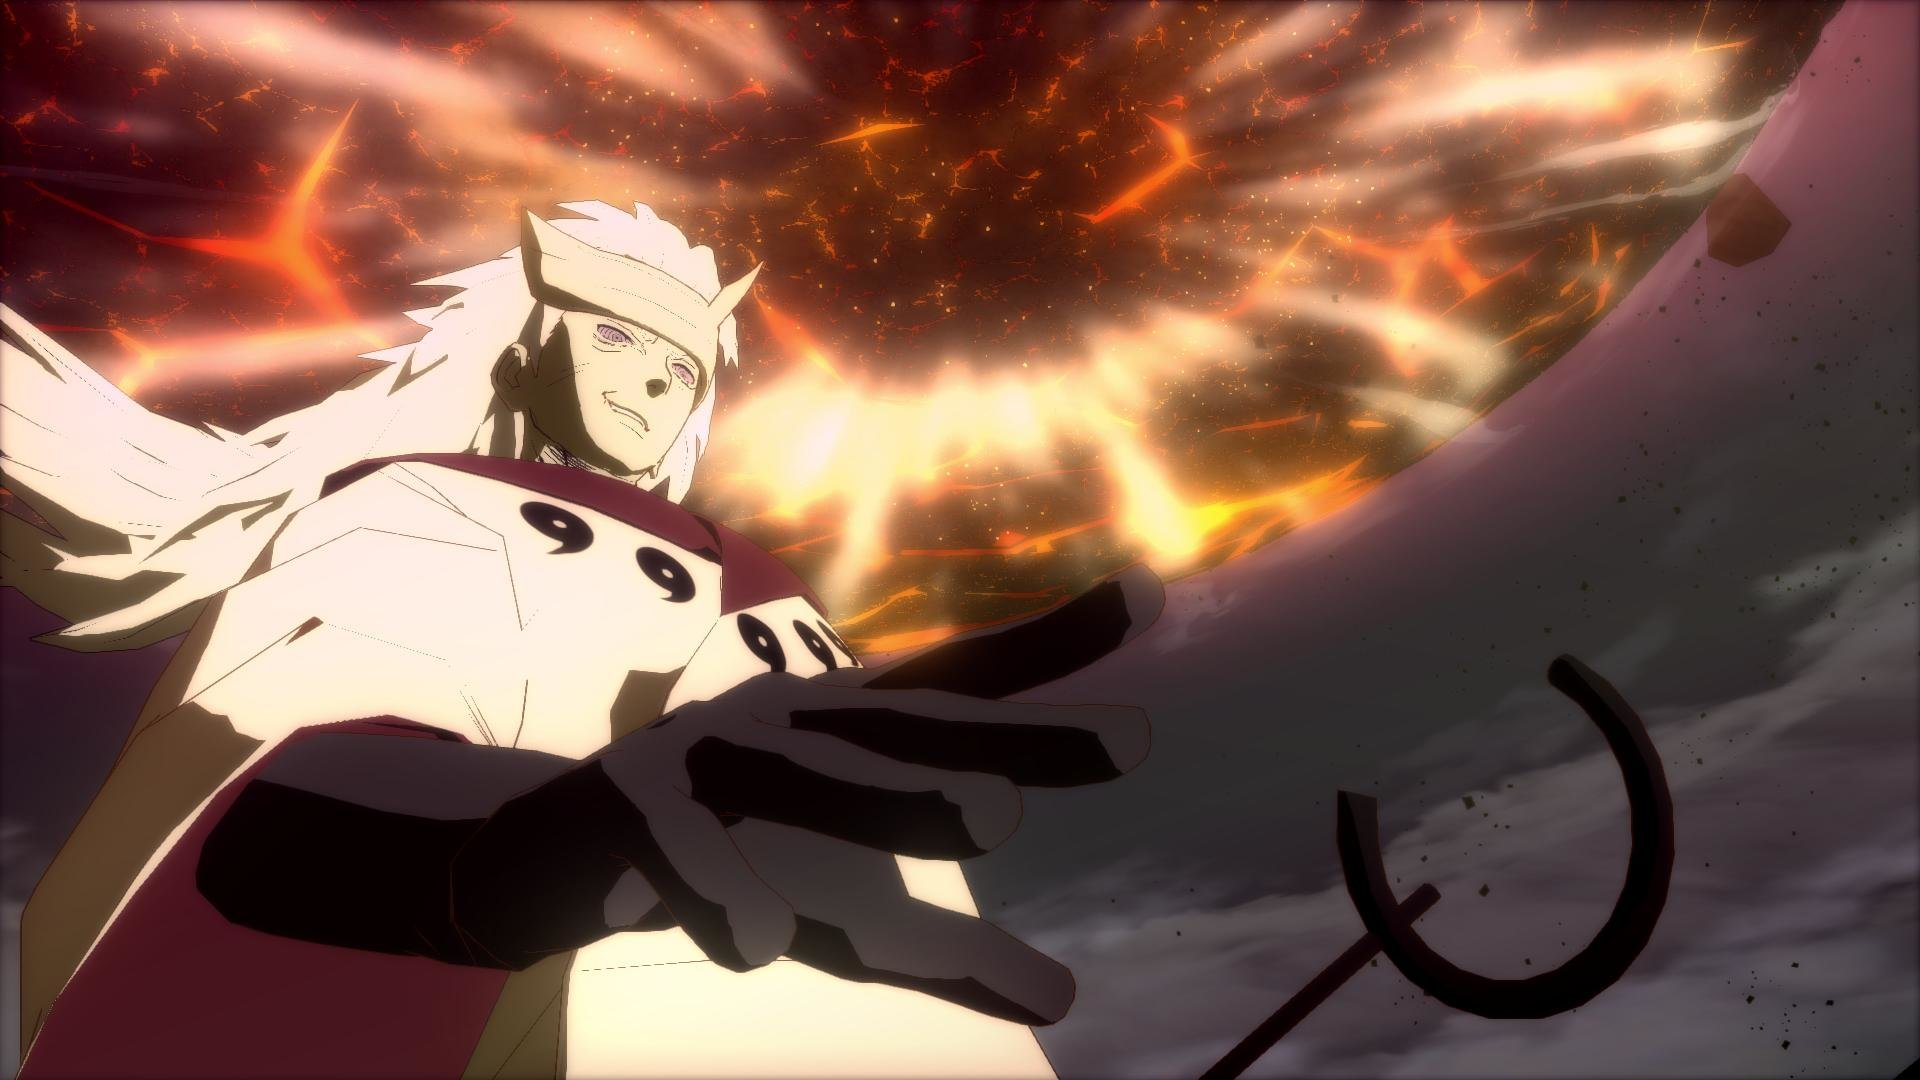 Awesome Naruto Shippuden: Ultimate Ninja Storm 4 free background ID:408871 for full hd 1080p desktop